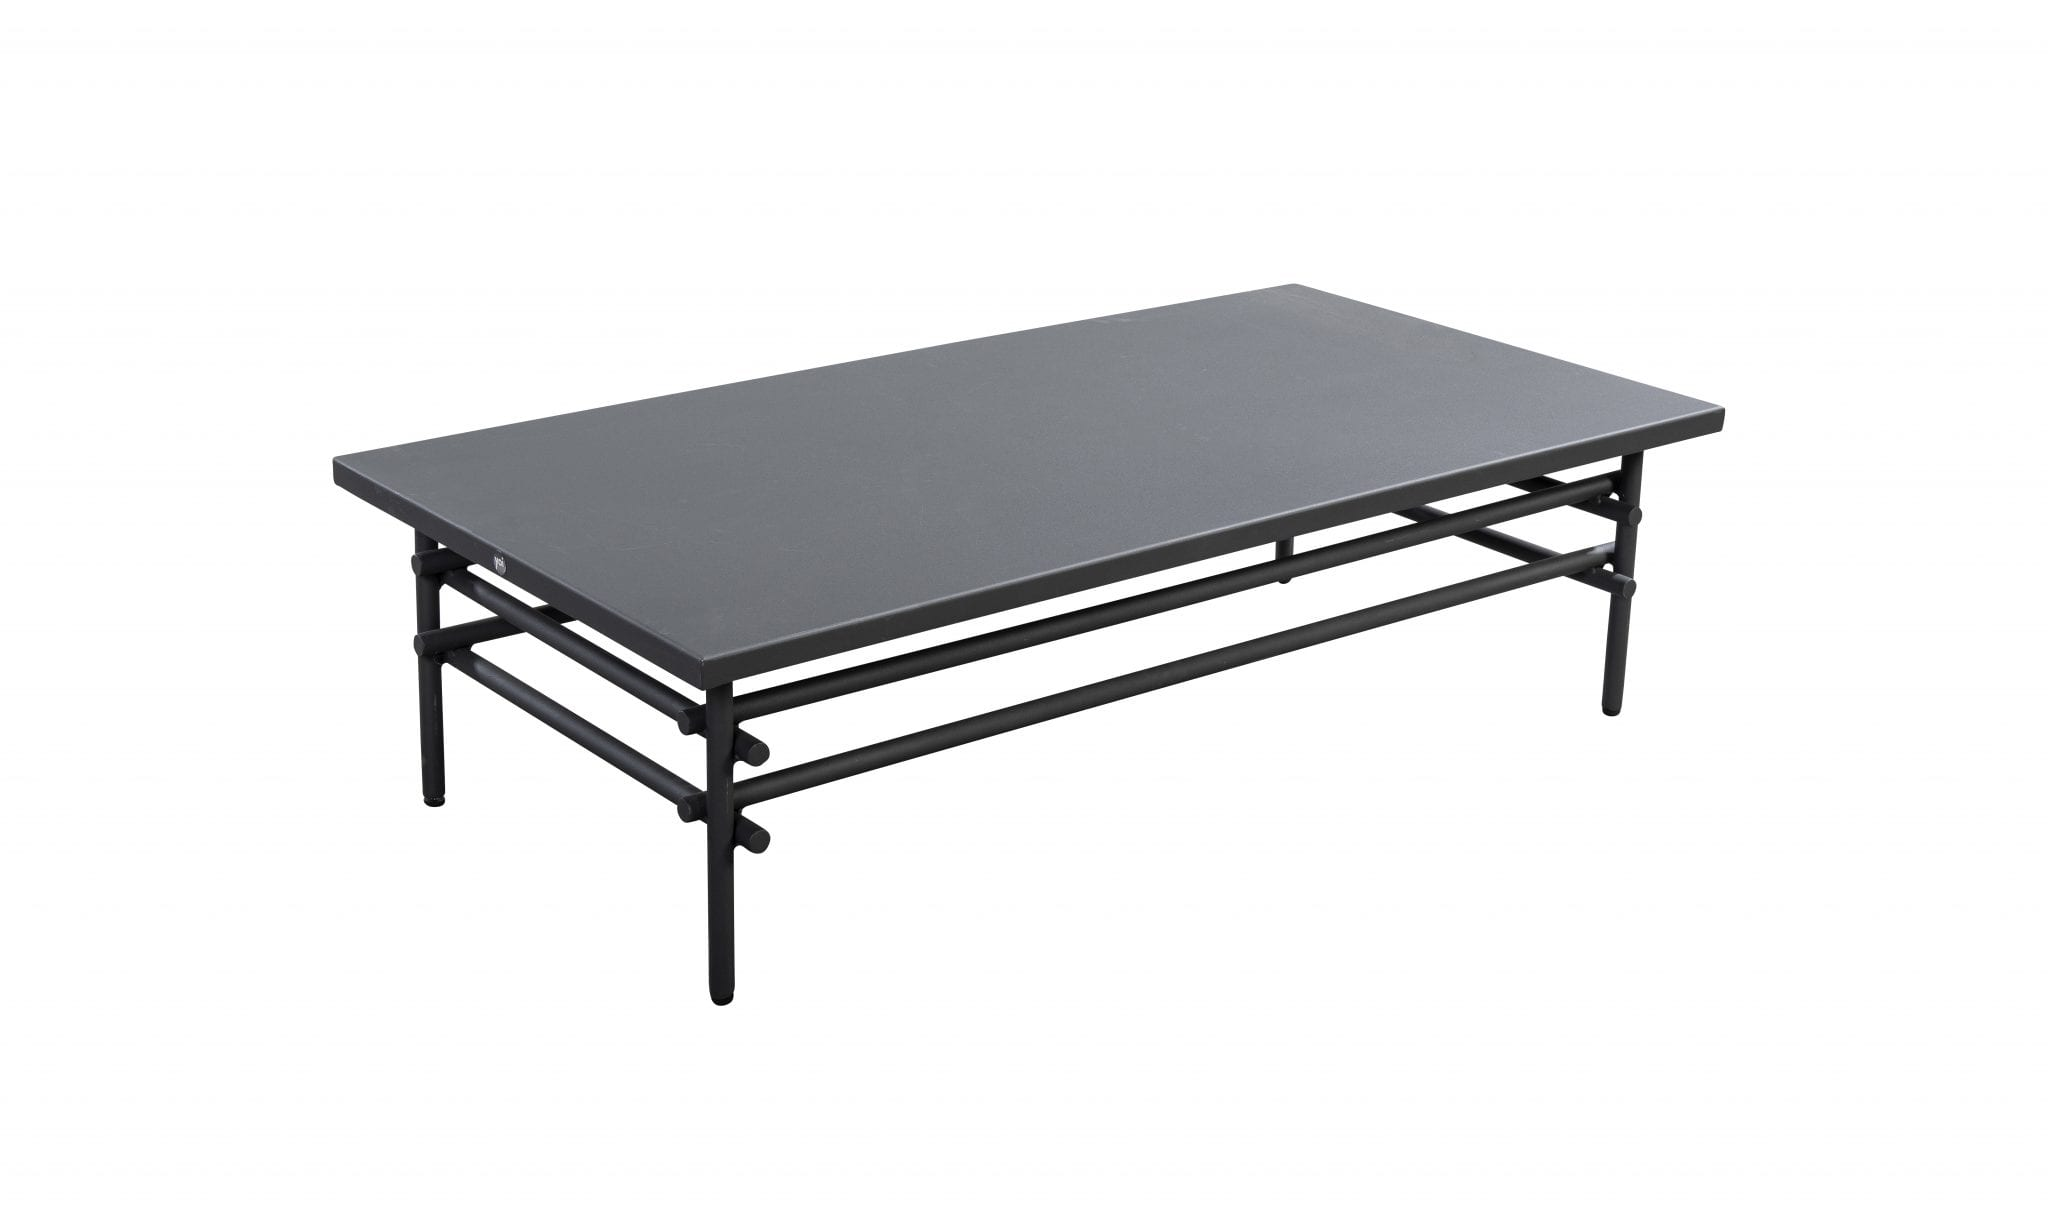 Ki 125x60 aluminium coffee table - dark grey | Yoi Furniture